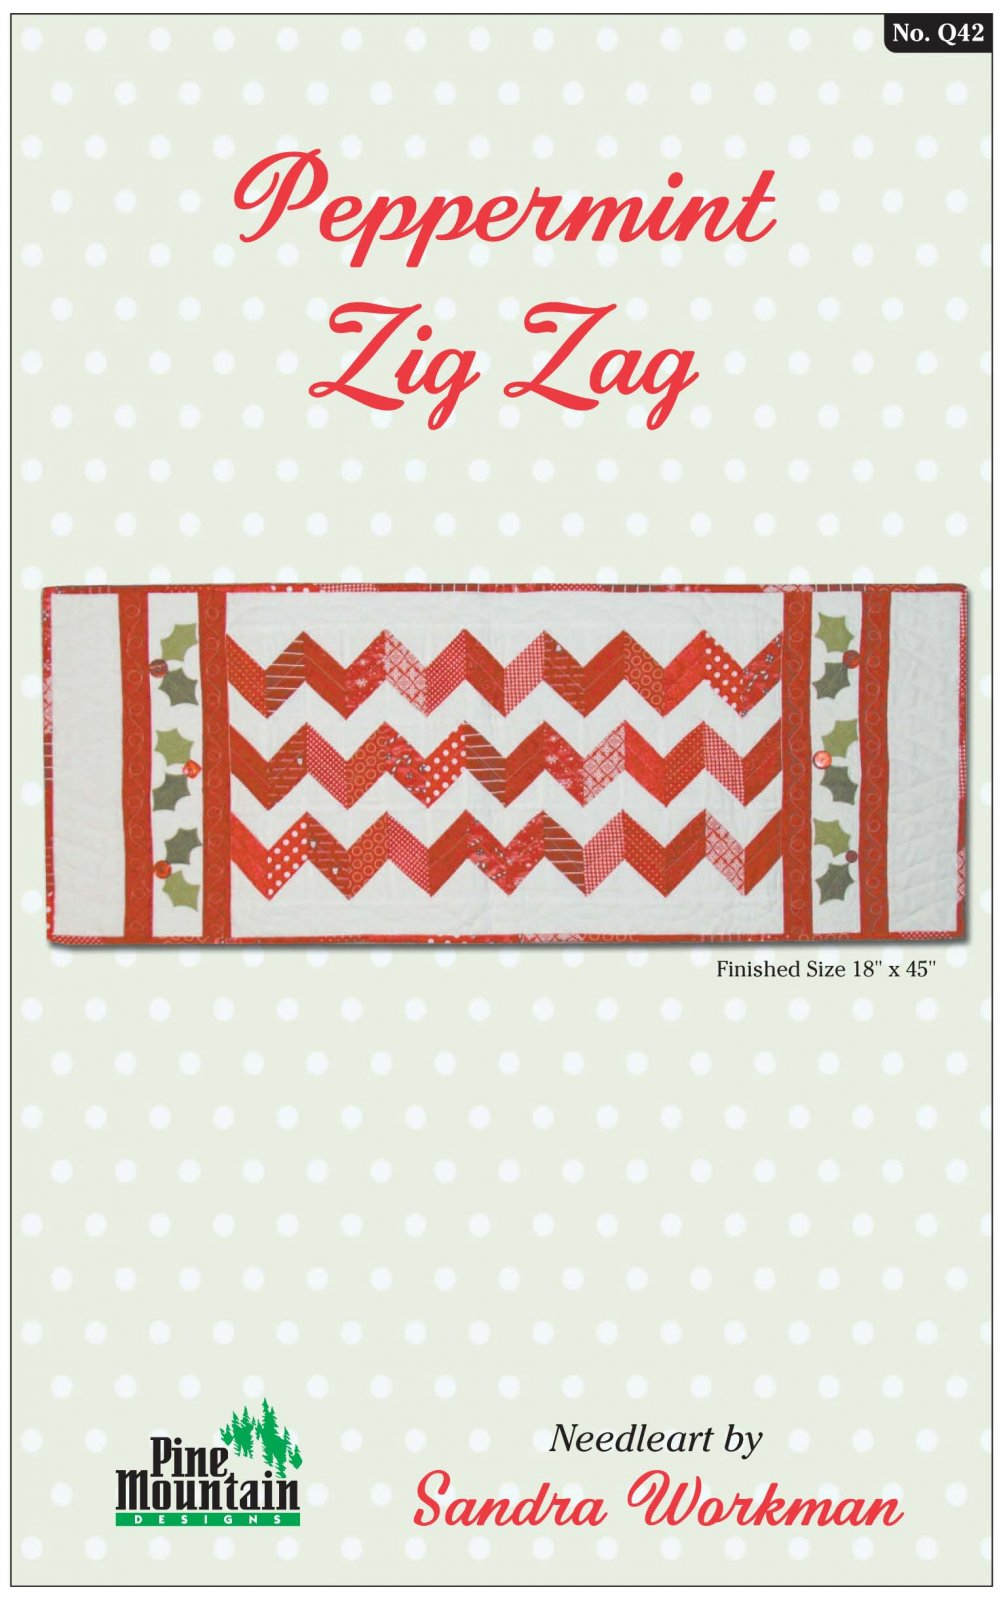 Q42 Peppermint Zig Zag Table Runner